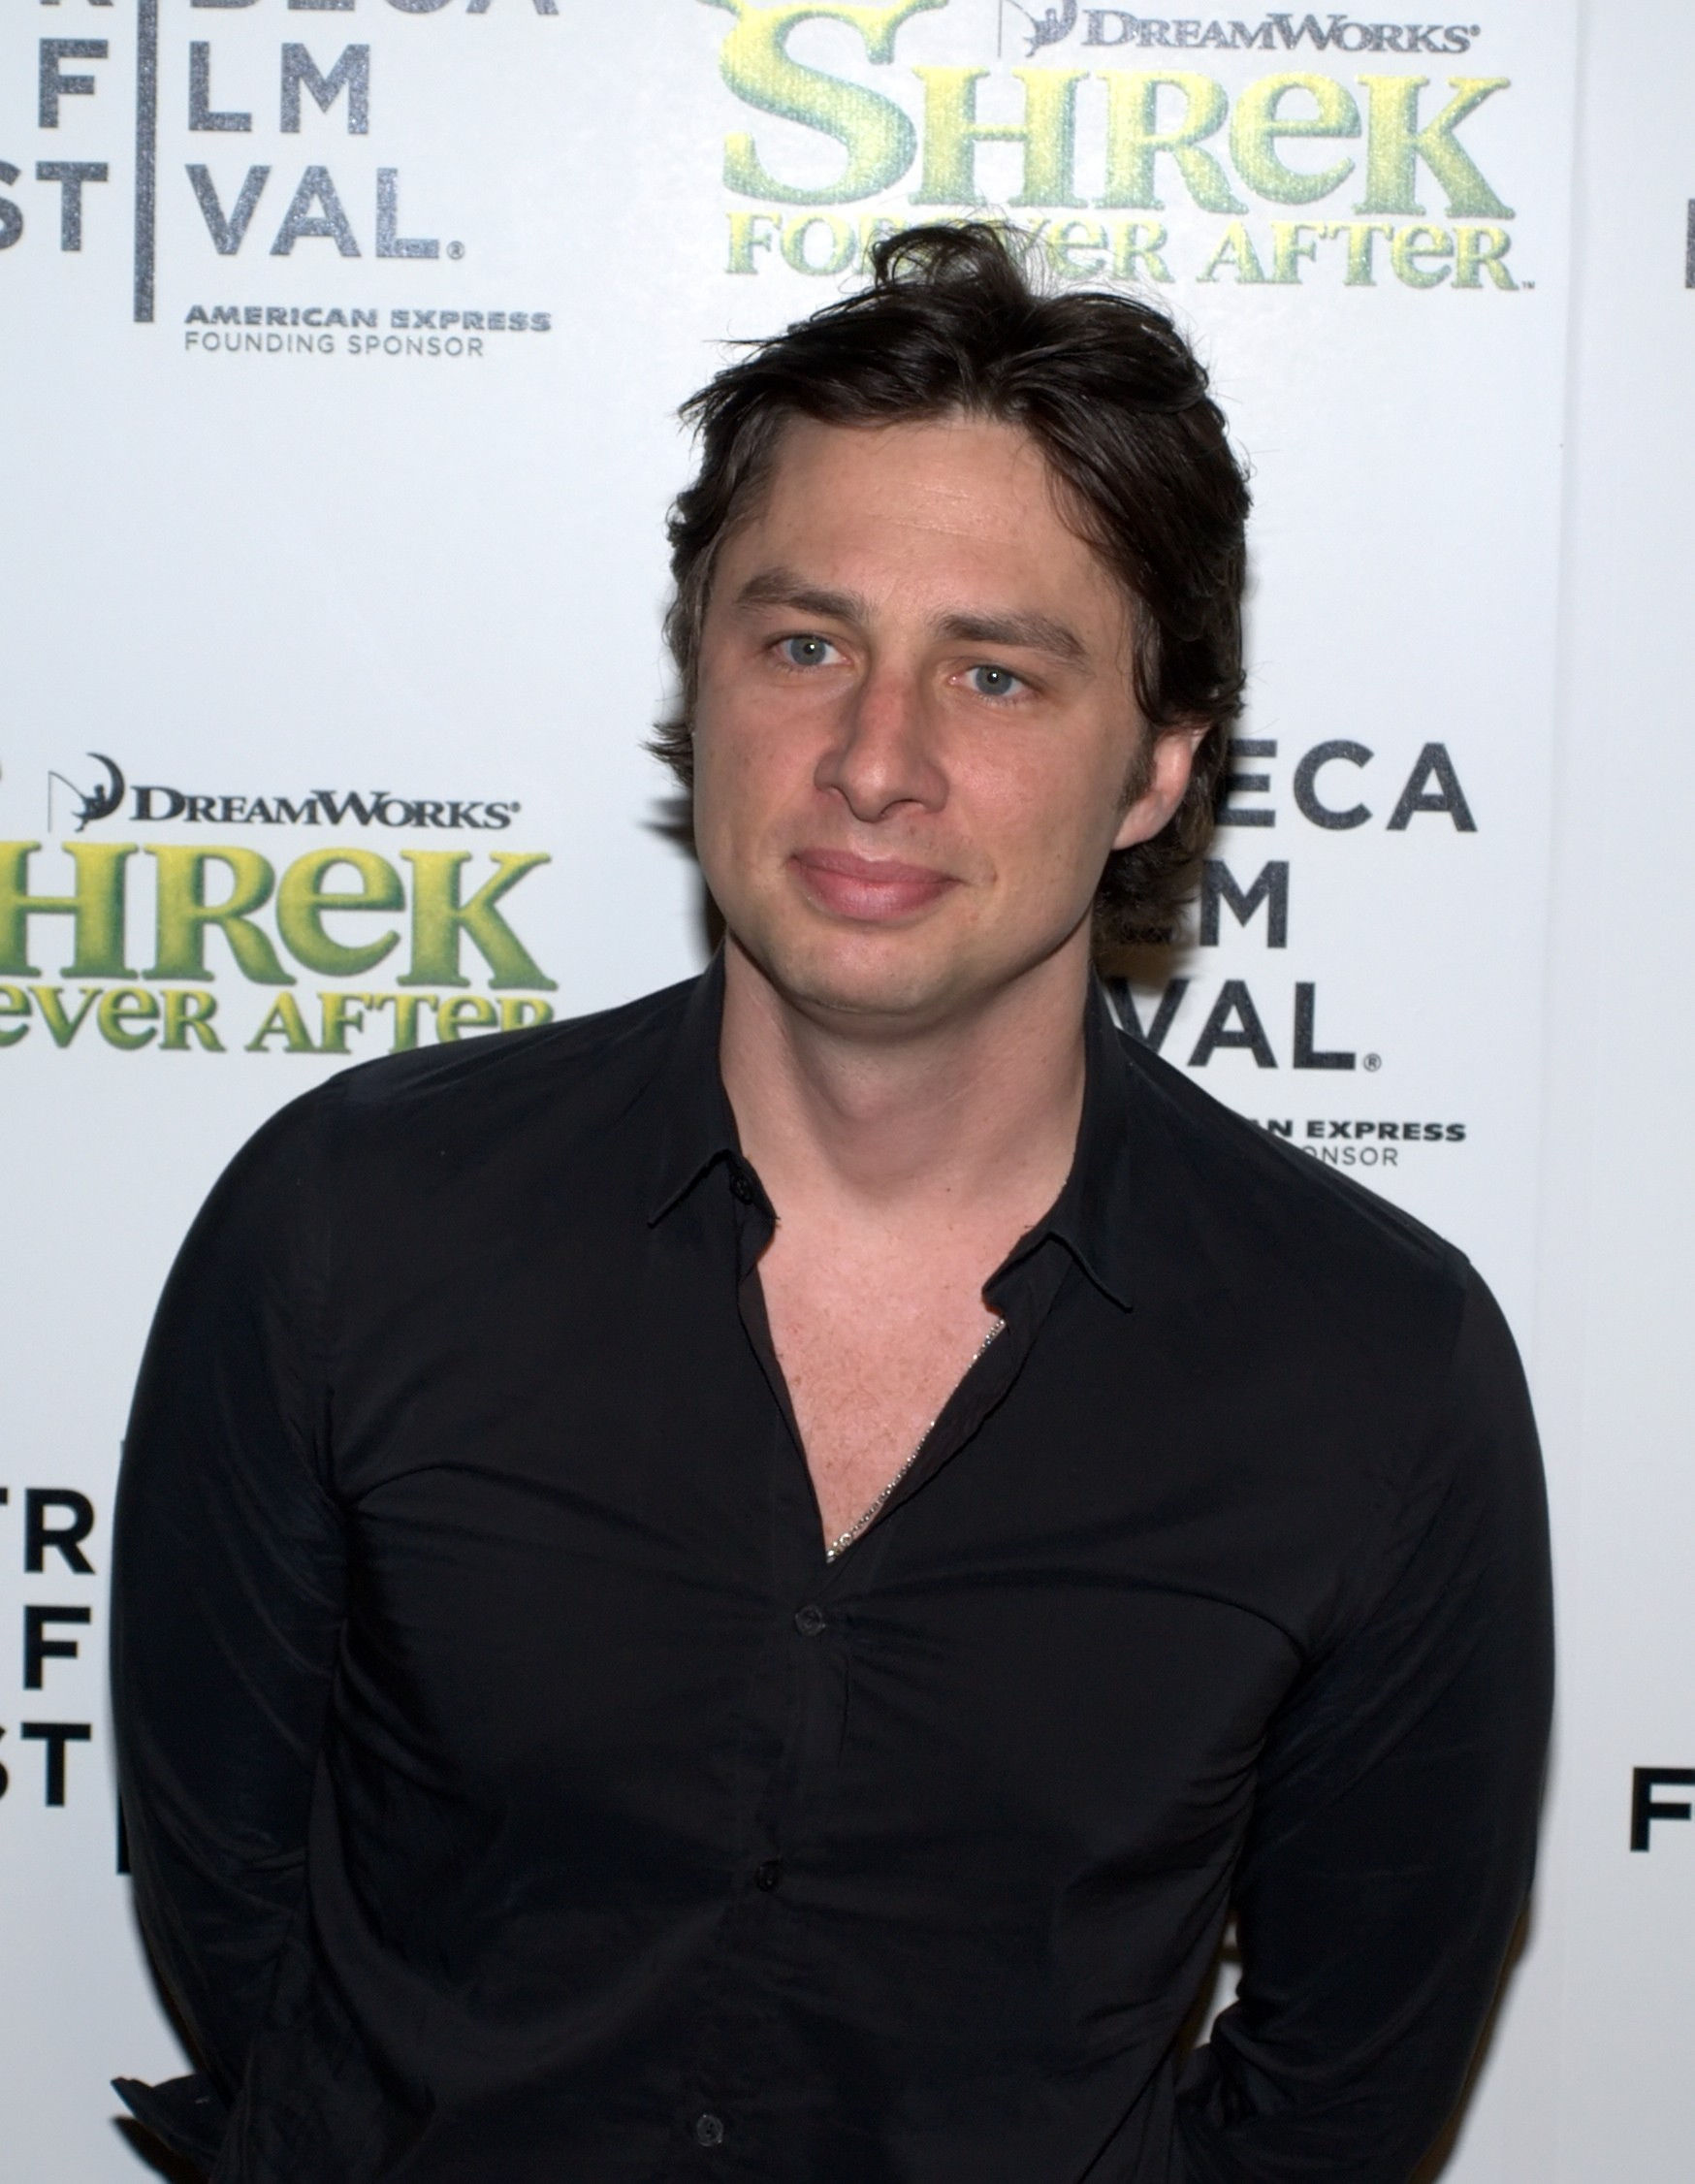 Zach_Braff_2_by_David_Shankbone.jpg